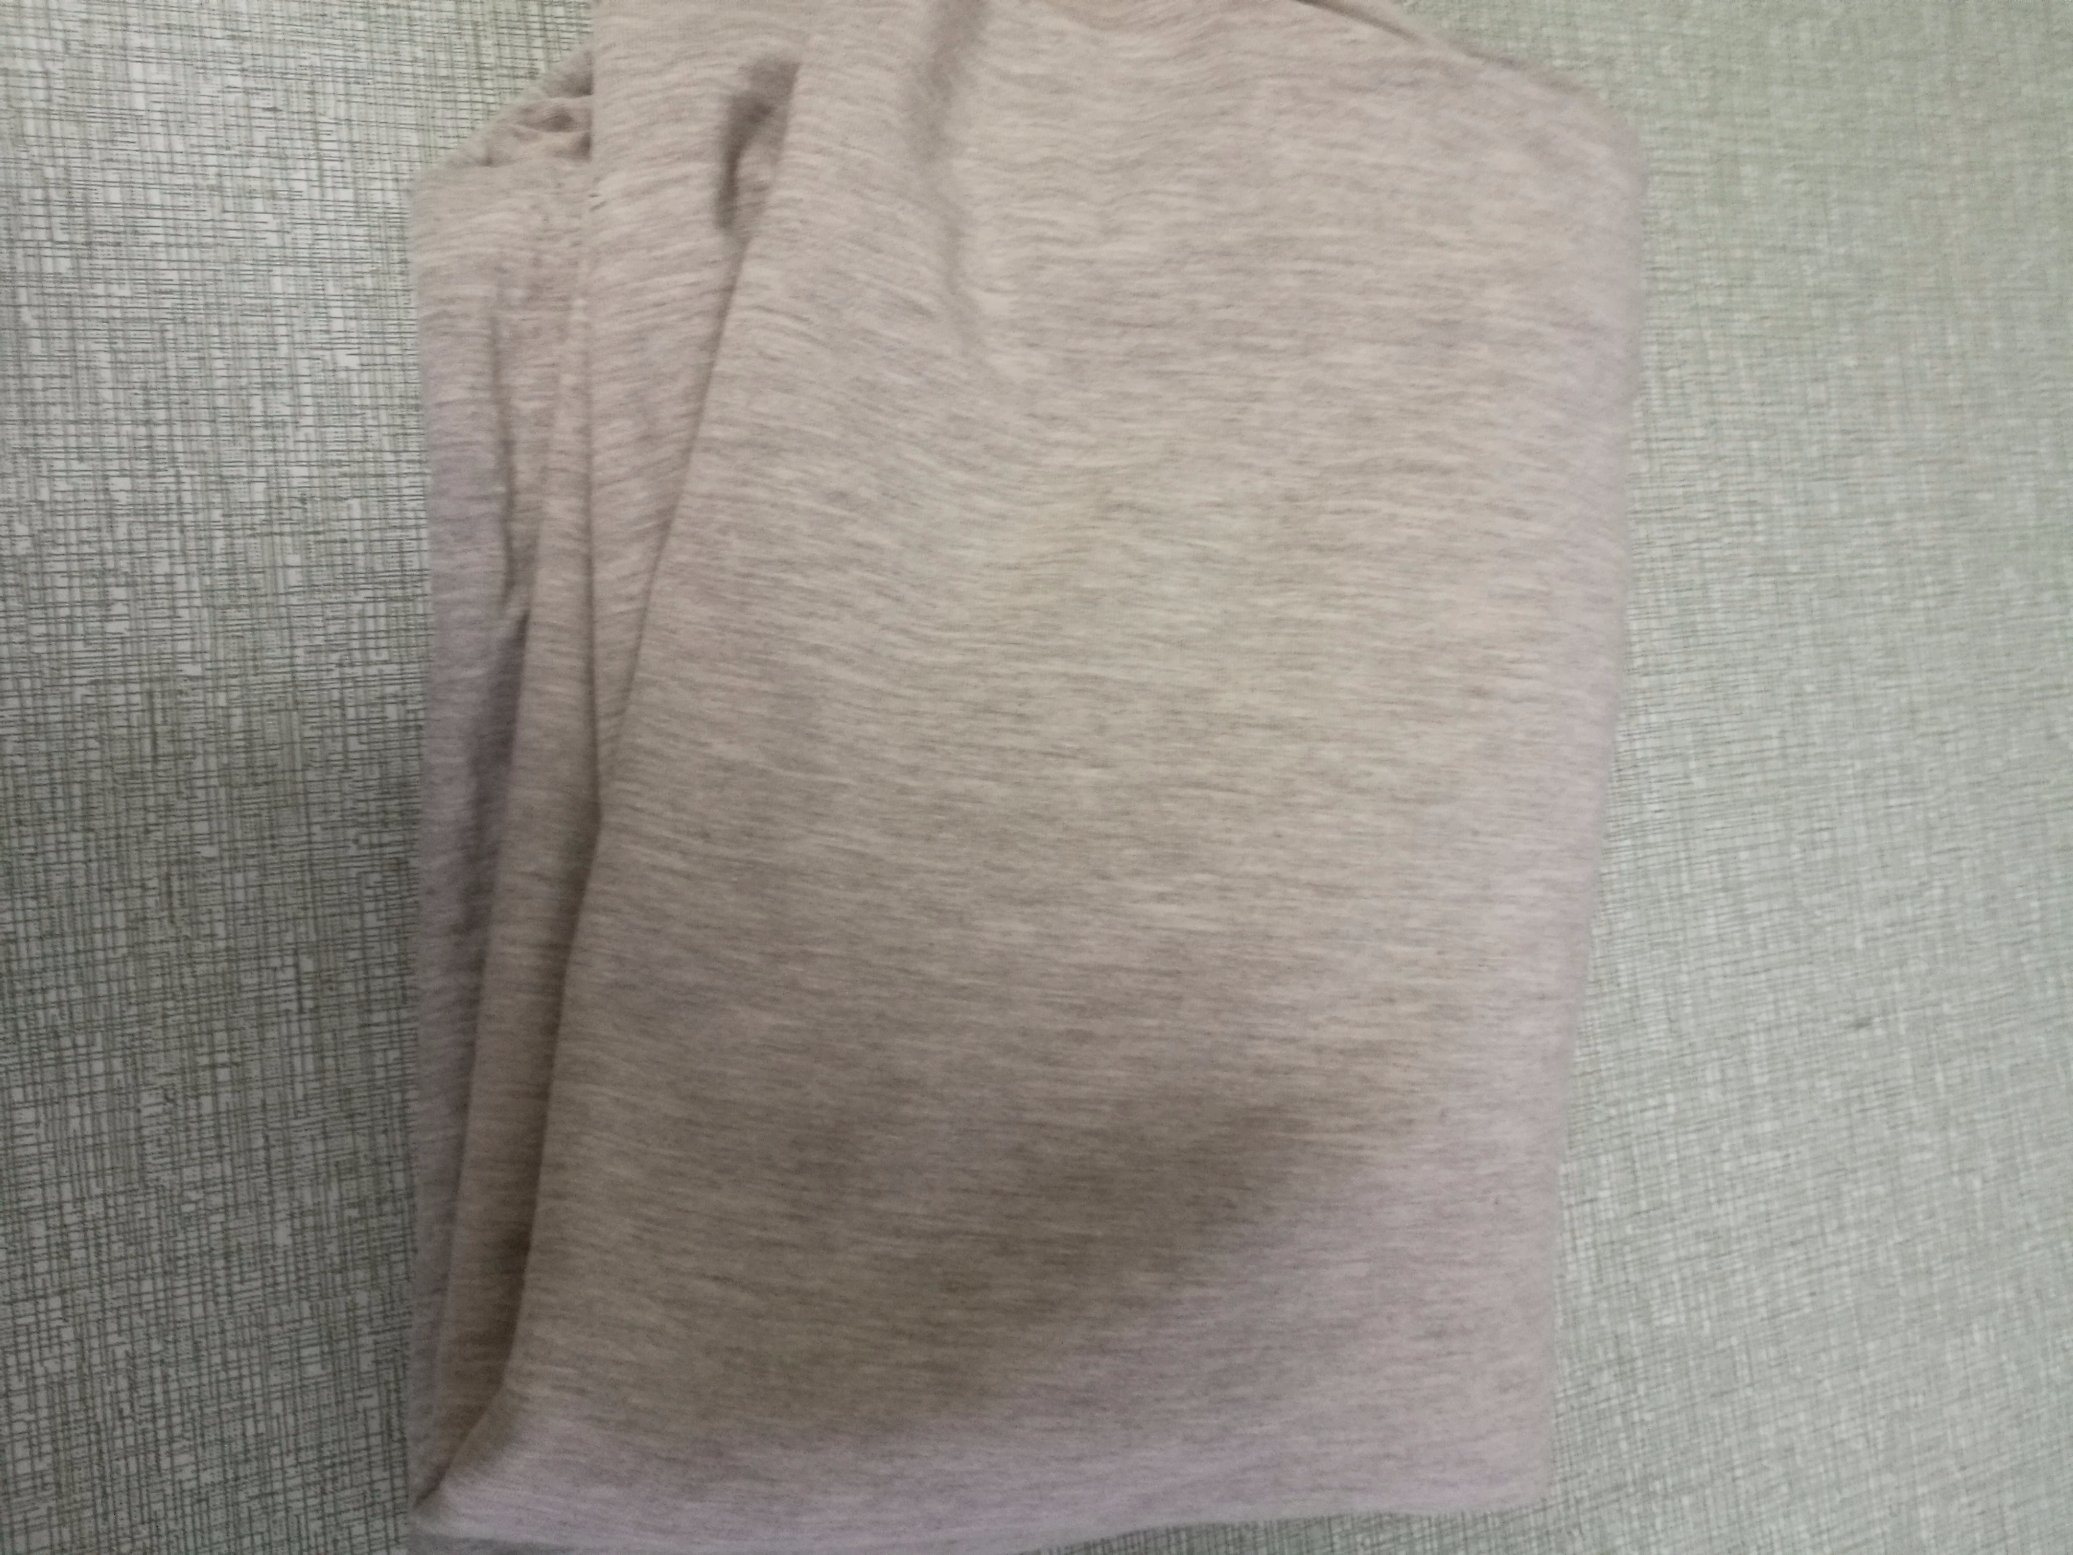 Skc150 Silver Fiber Knitting Cotton Fabric for Underclothes